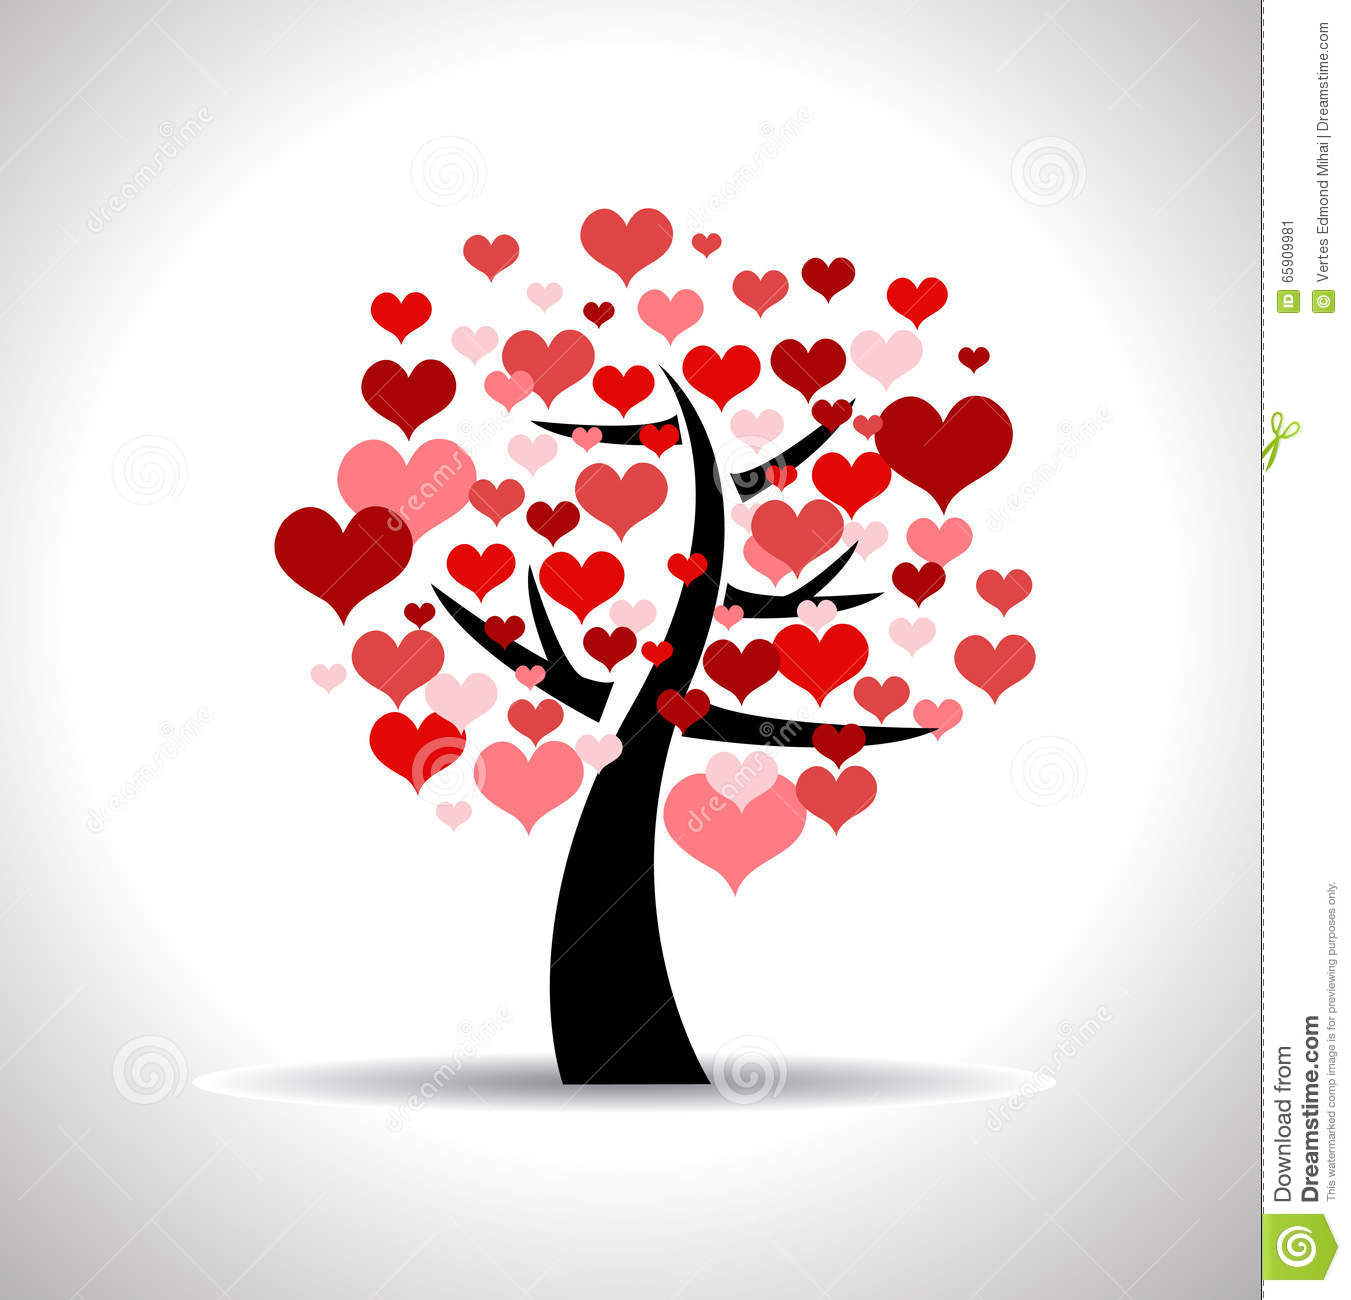 Love Tree Stock Vector - Image: 65909981